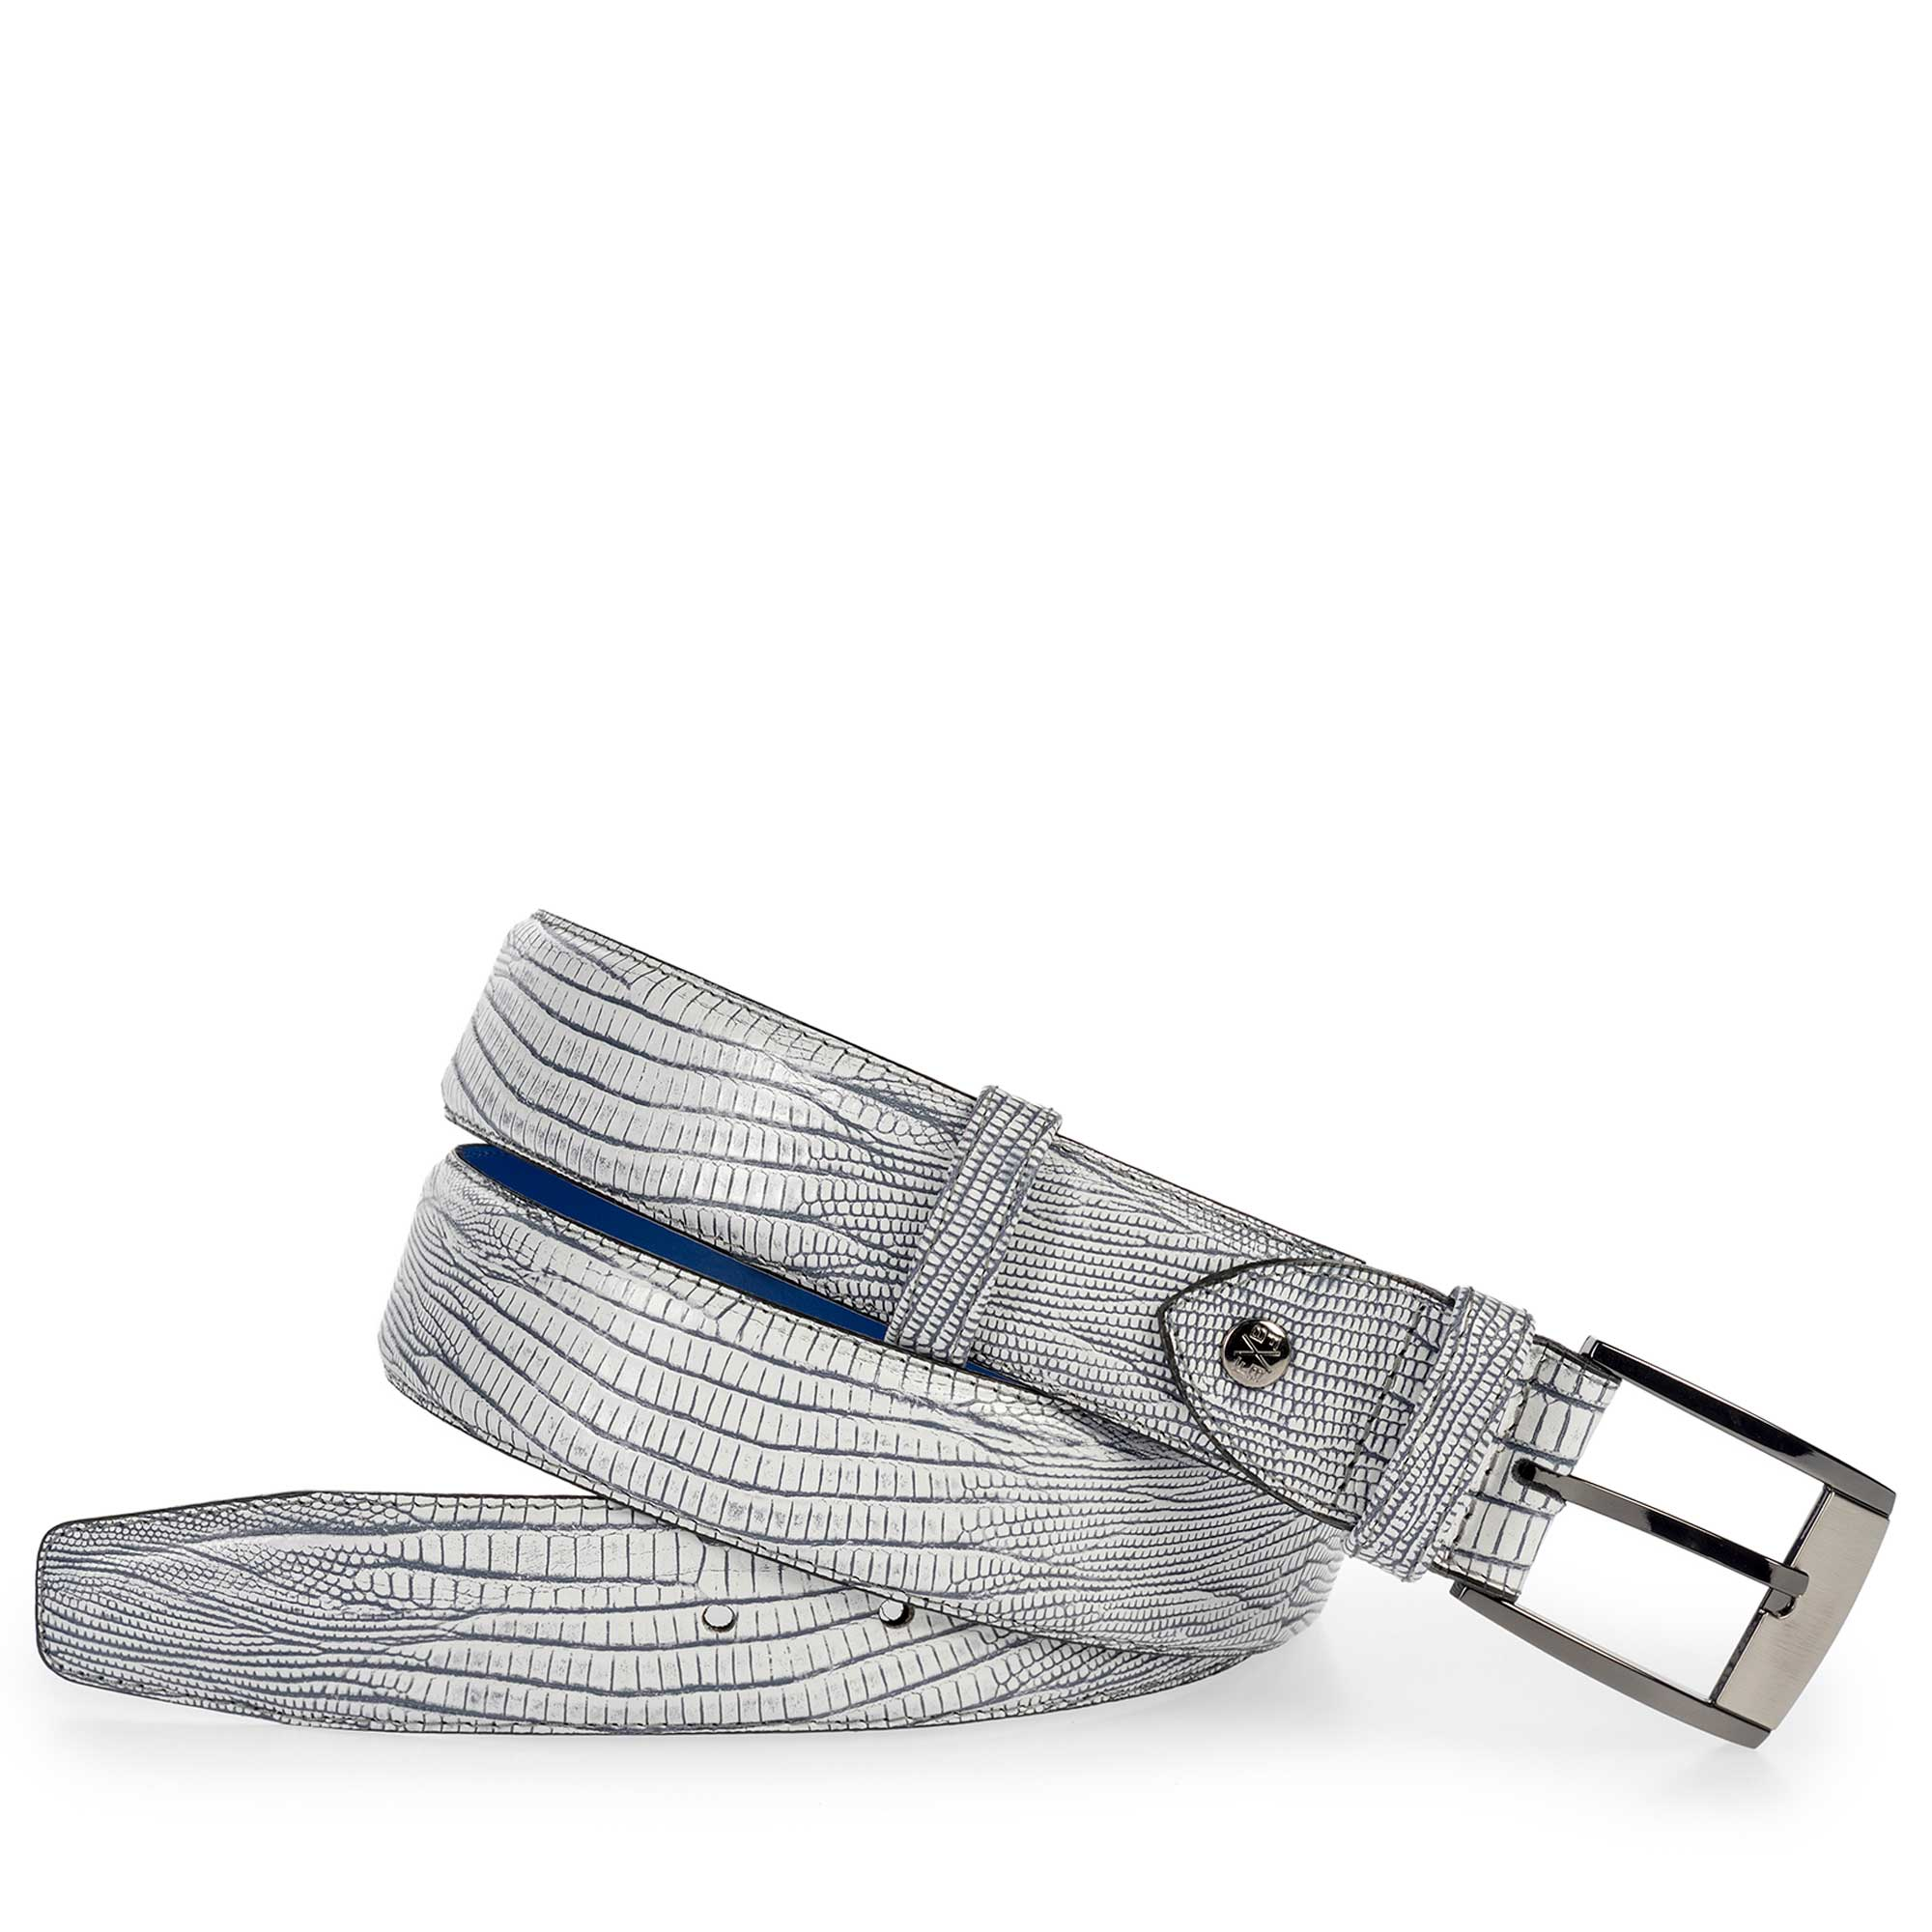 75180/31 - Leather belt with a lizard print